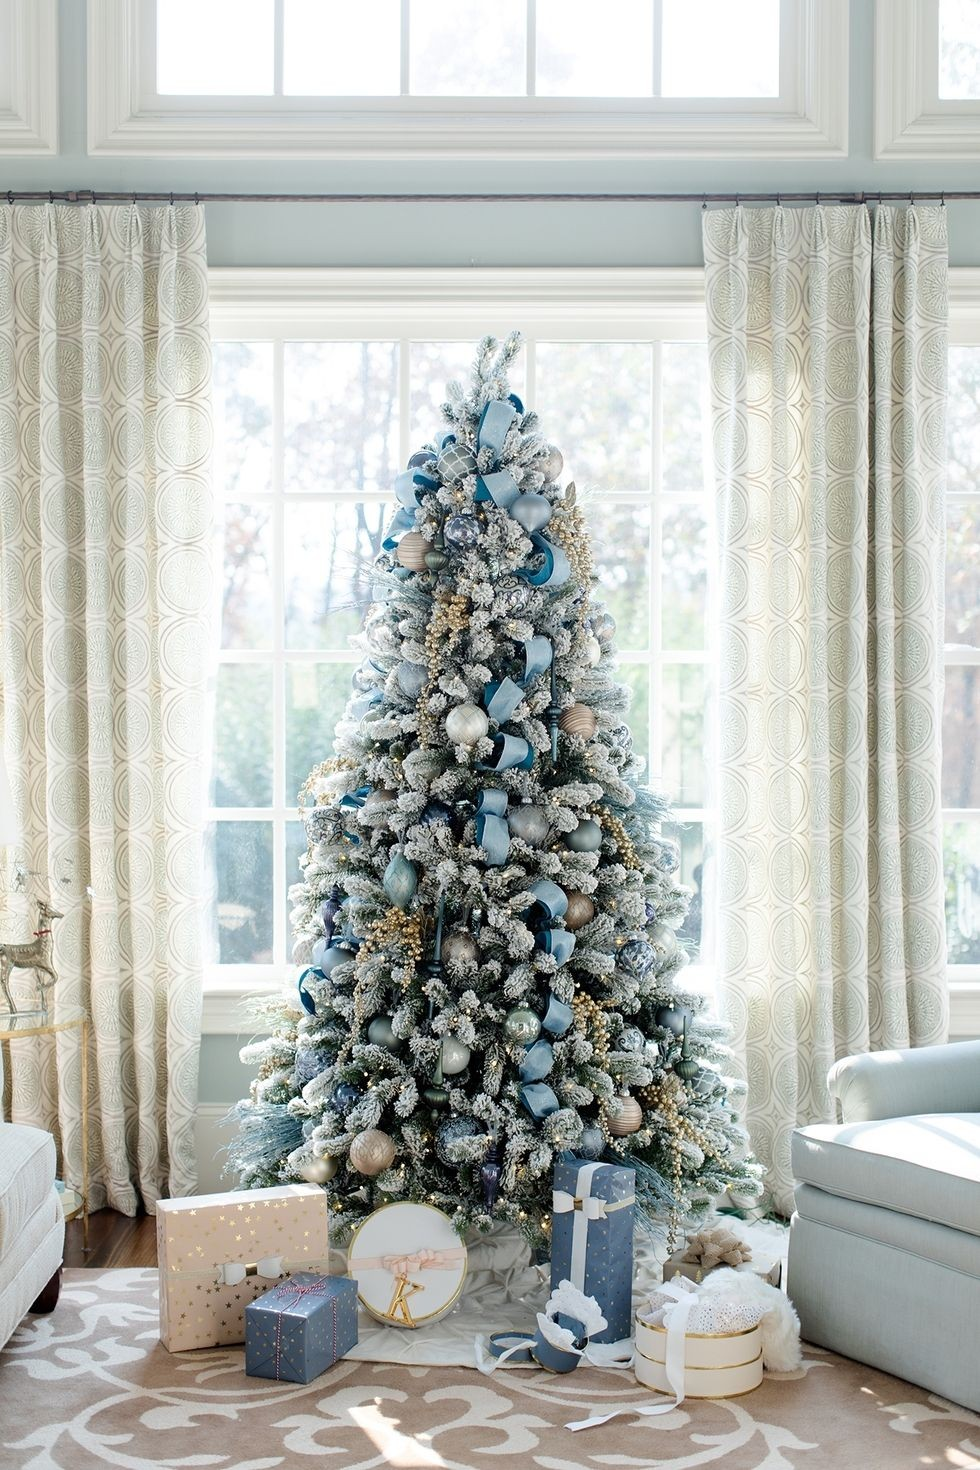 6 Mesmerizing Ways To Decor Your Christmas Tree This Holiday | Streets are already starting to shine with all of the traditional fairy lights that warm up people's hearts. #christmasdecor #christmastree #homedecor #fairylights #christmasspirit #interiordesign  6 Mesmerizing Ways To Decor Your Christmas Tree This Holiday christmas tree decorations 2 1505317316